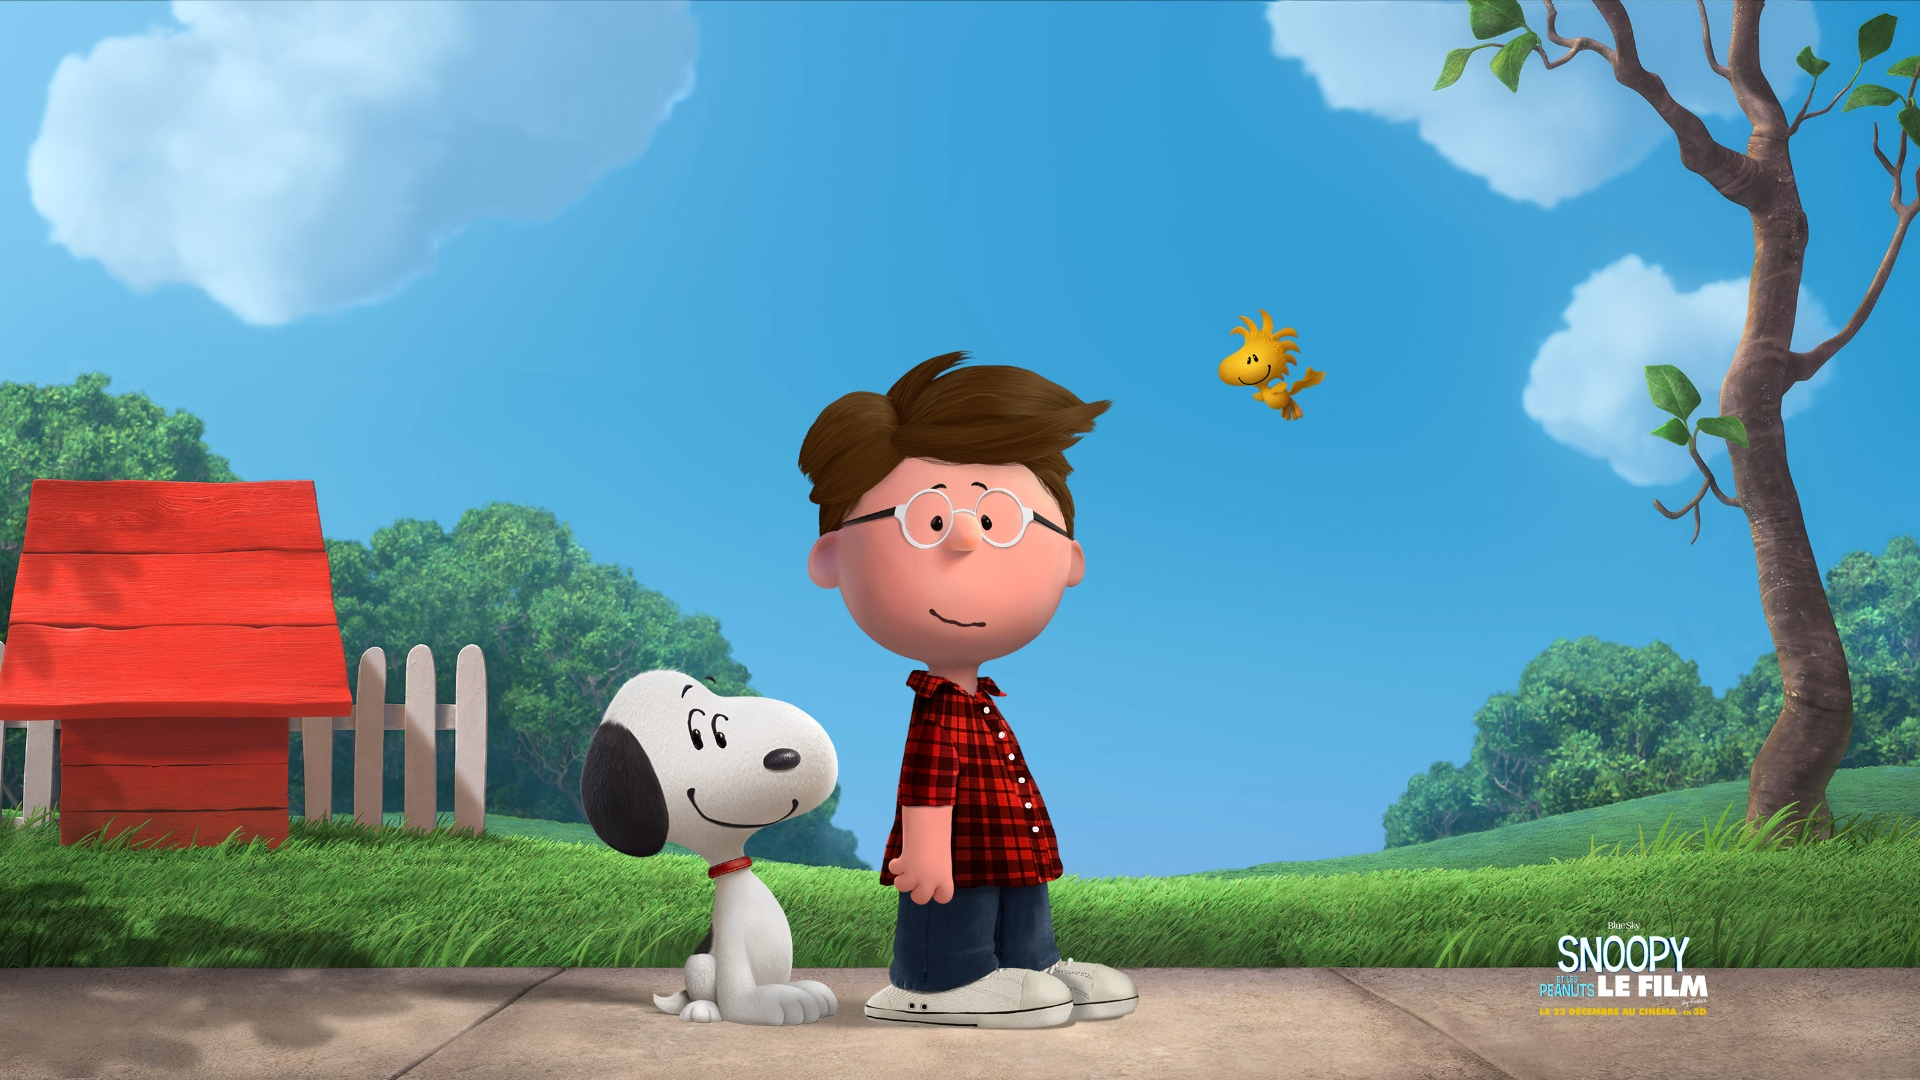 20th century fox - peanutize me-wcie2